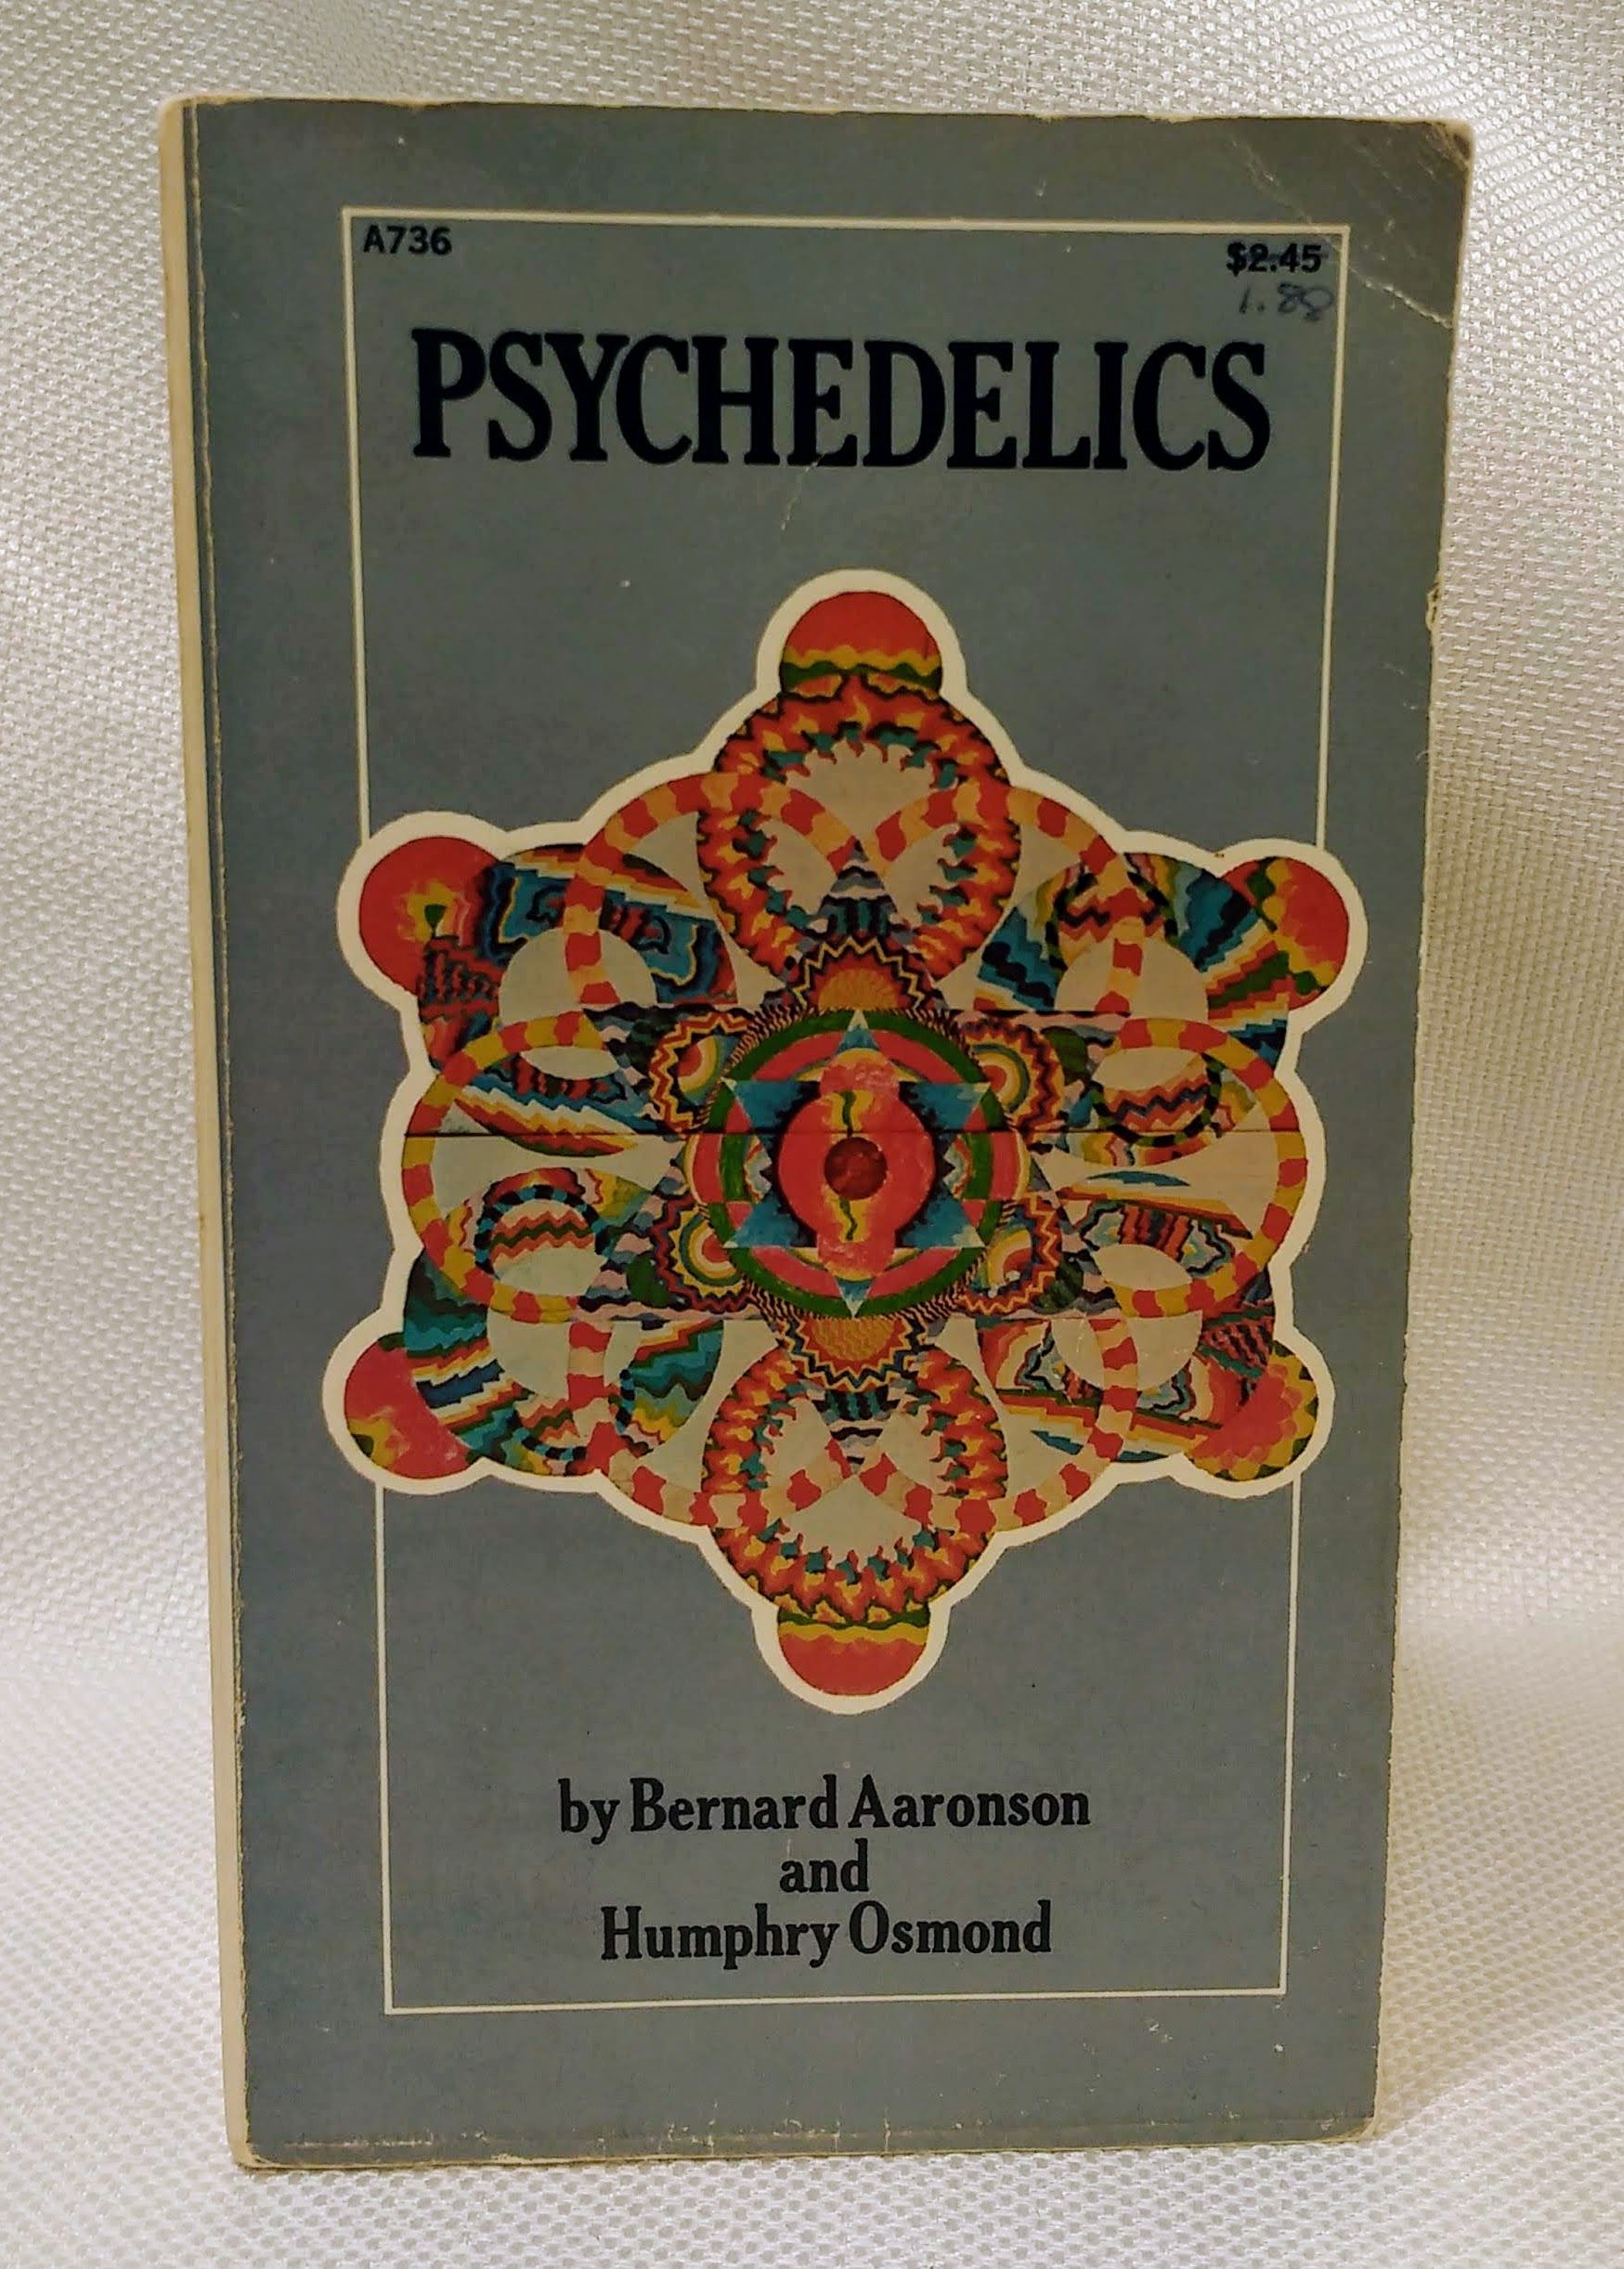 Psychedelics: The Uses and Implications of Hallucinogenic Drugs, Bernard Aaronson [Editor]; Humphry Osmond [Editor];